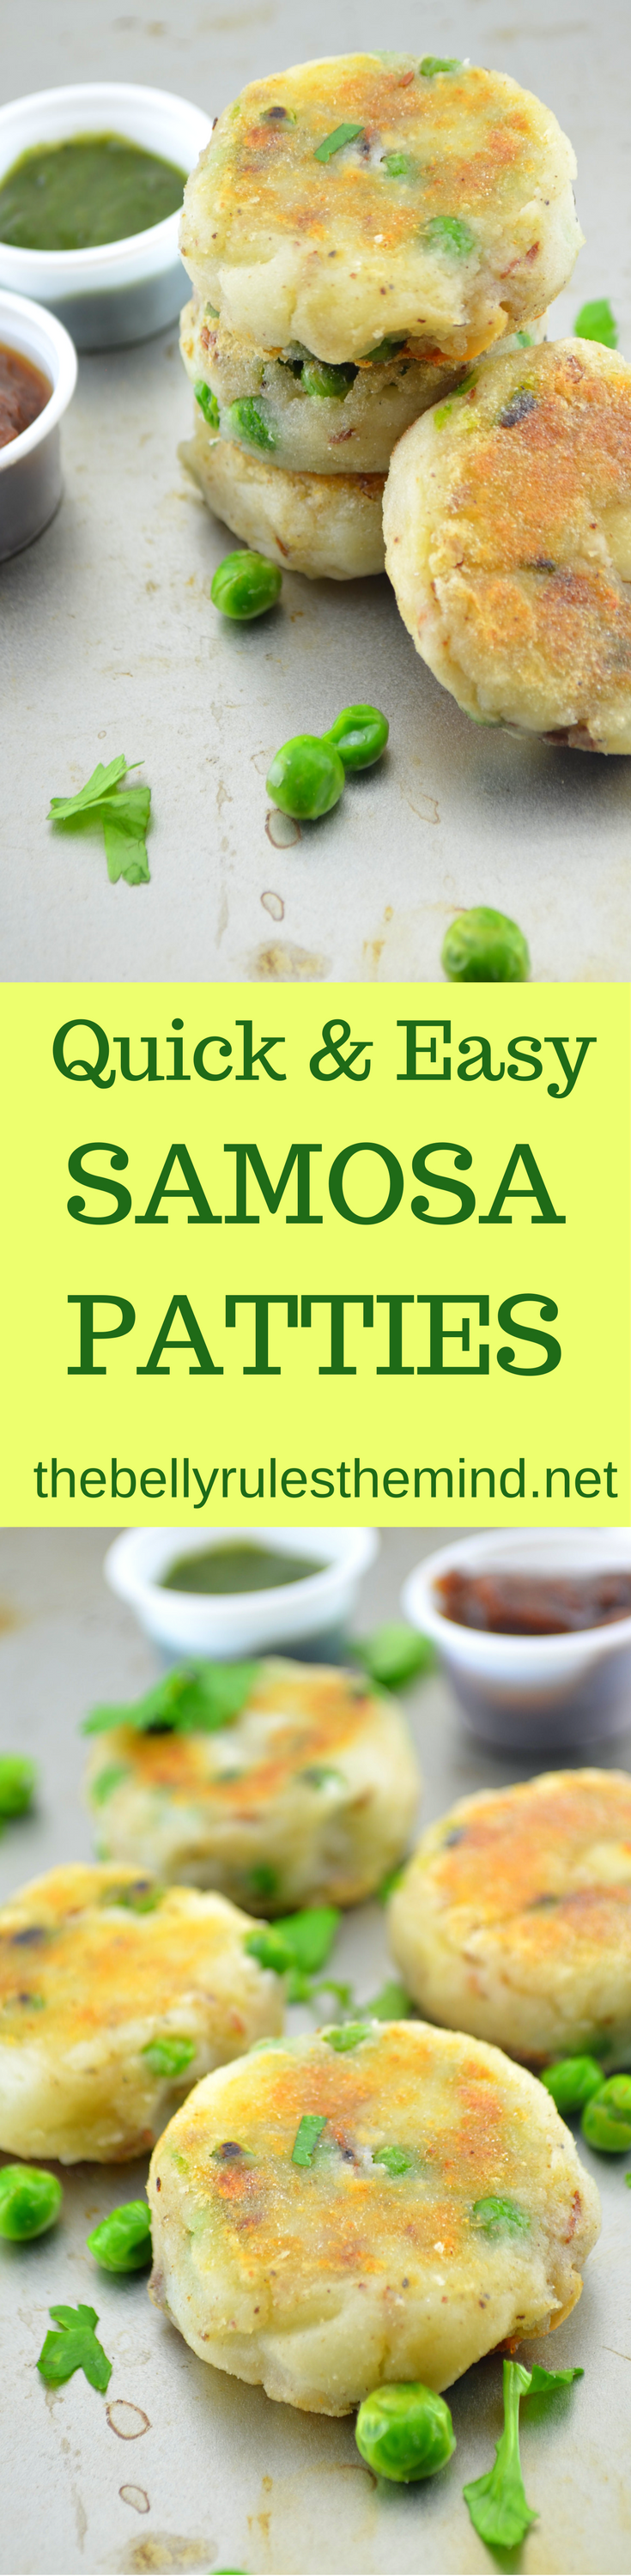 samosa-patties